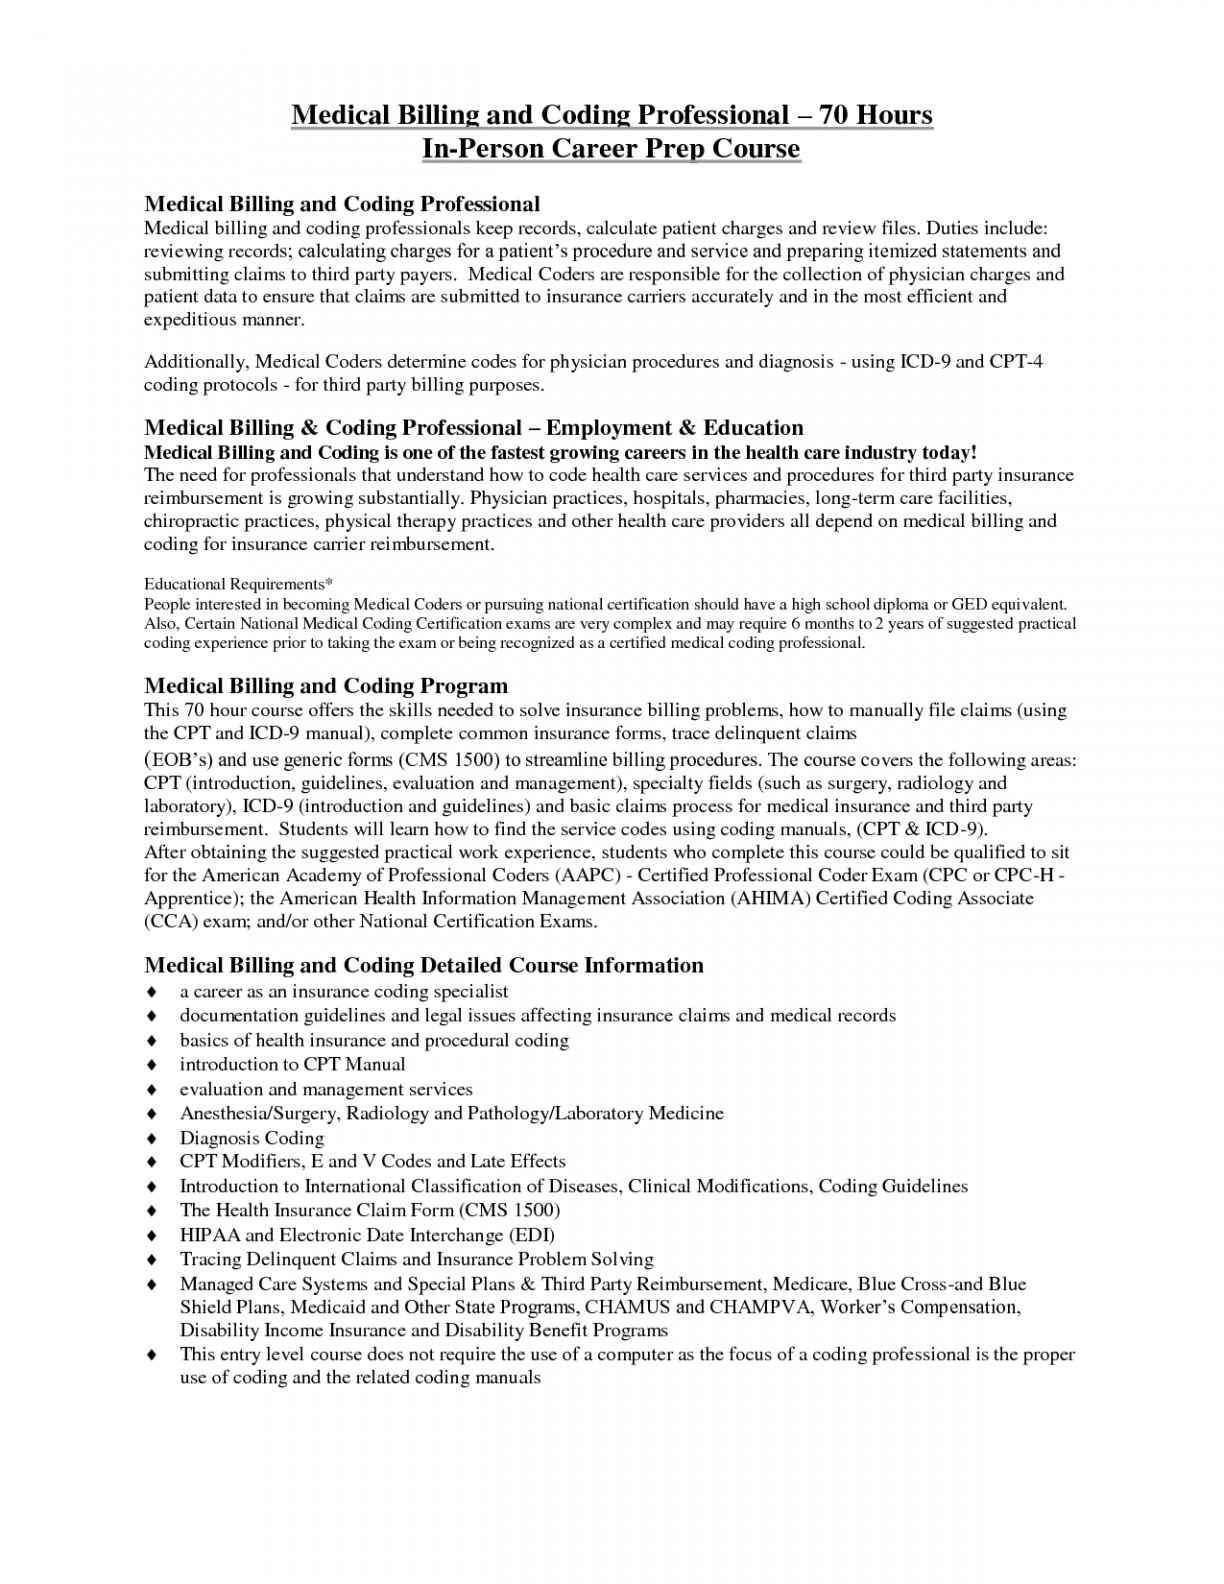 Medical Coding State Exam And Medical Coding Practice Worksheets Pertaining To Medical Coding Practice Worksheets